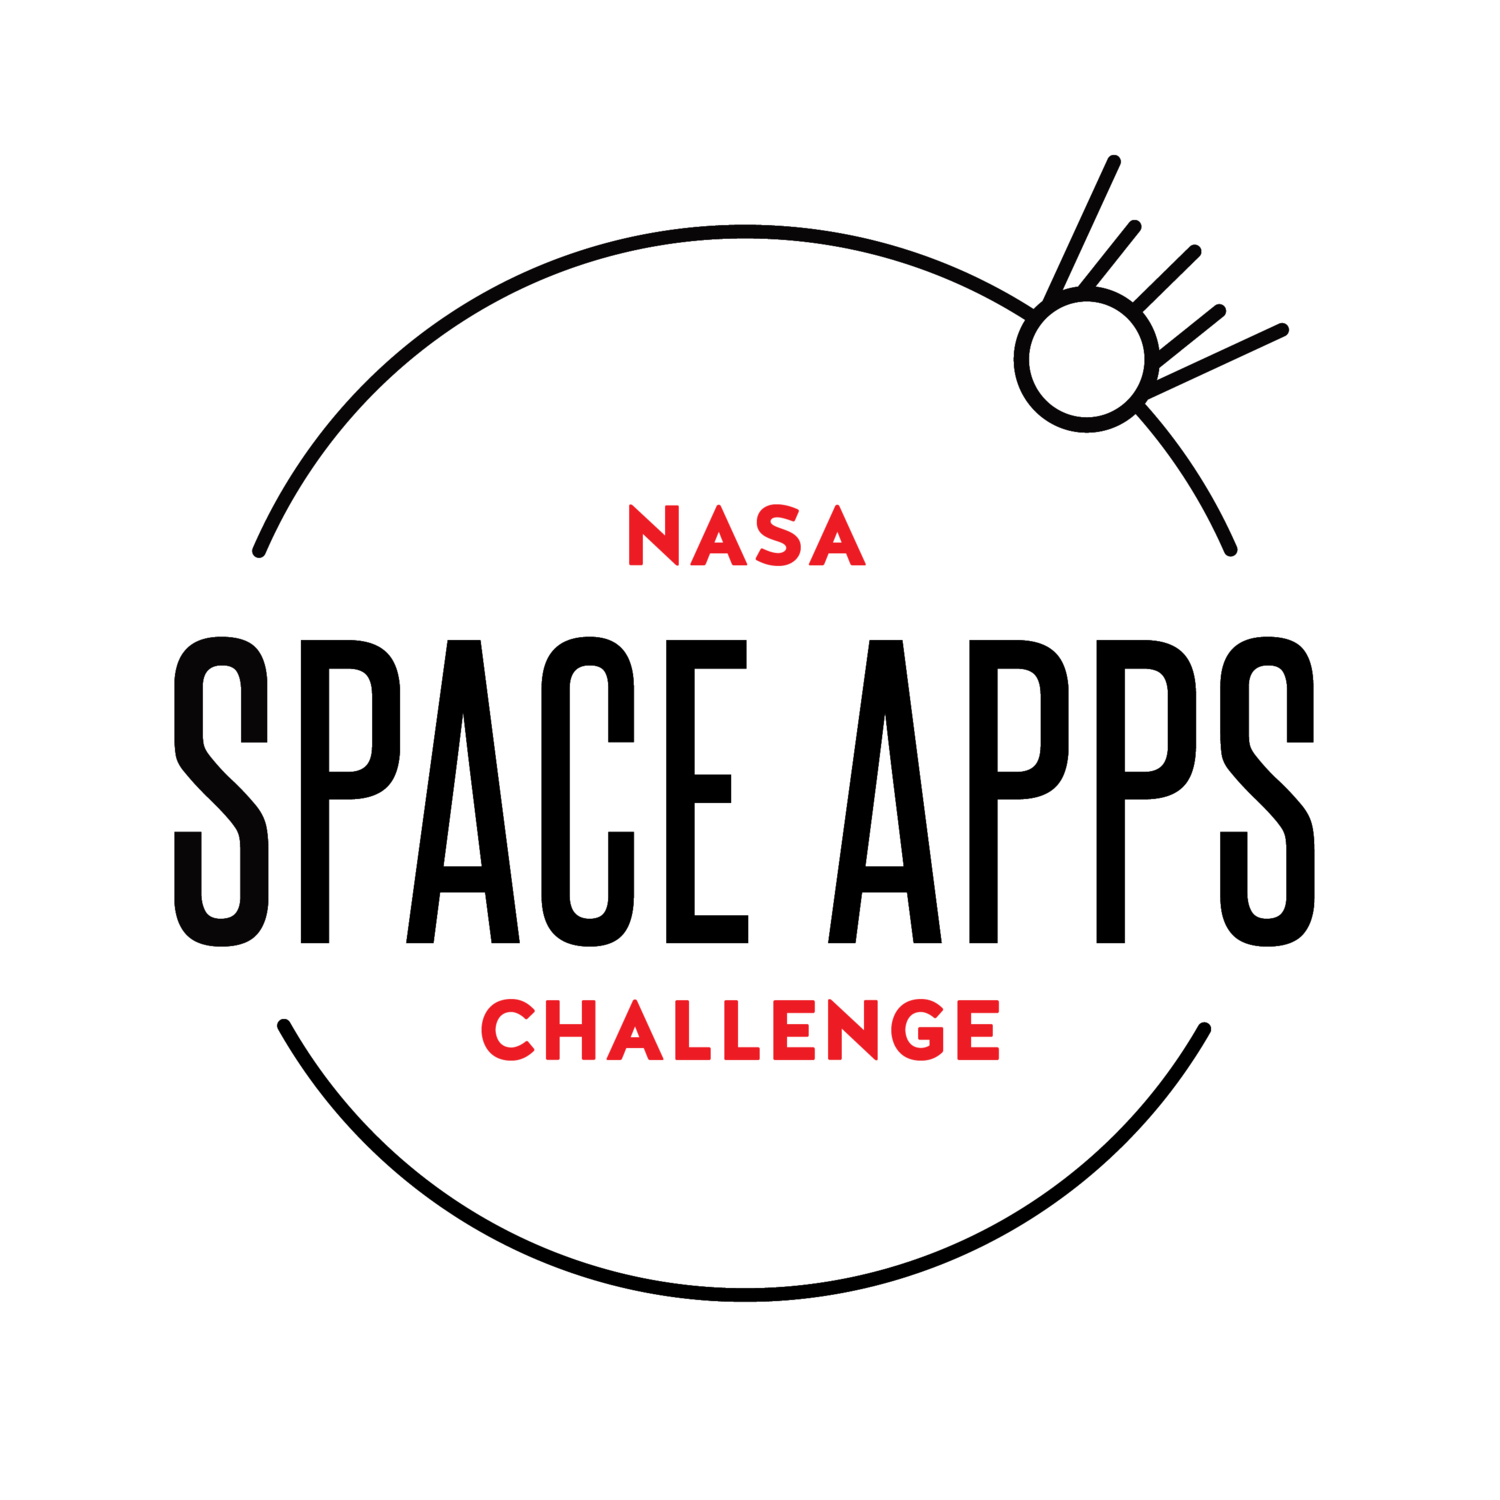 NASA Space Apps Sydney